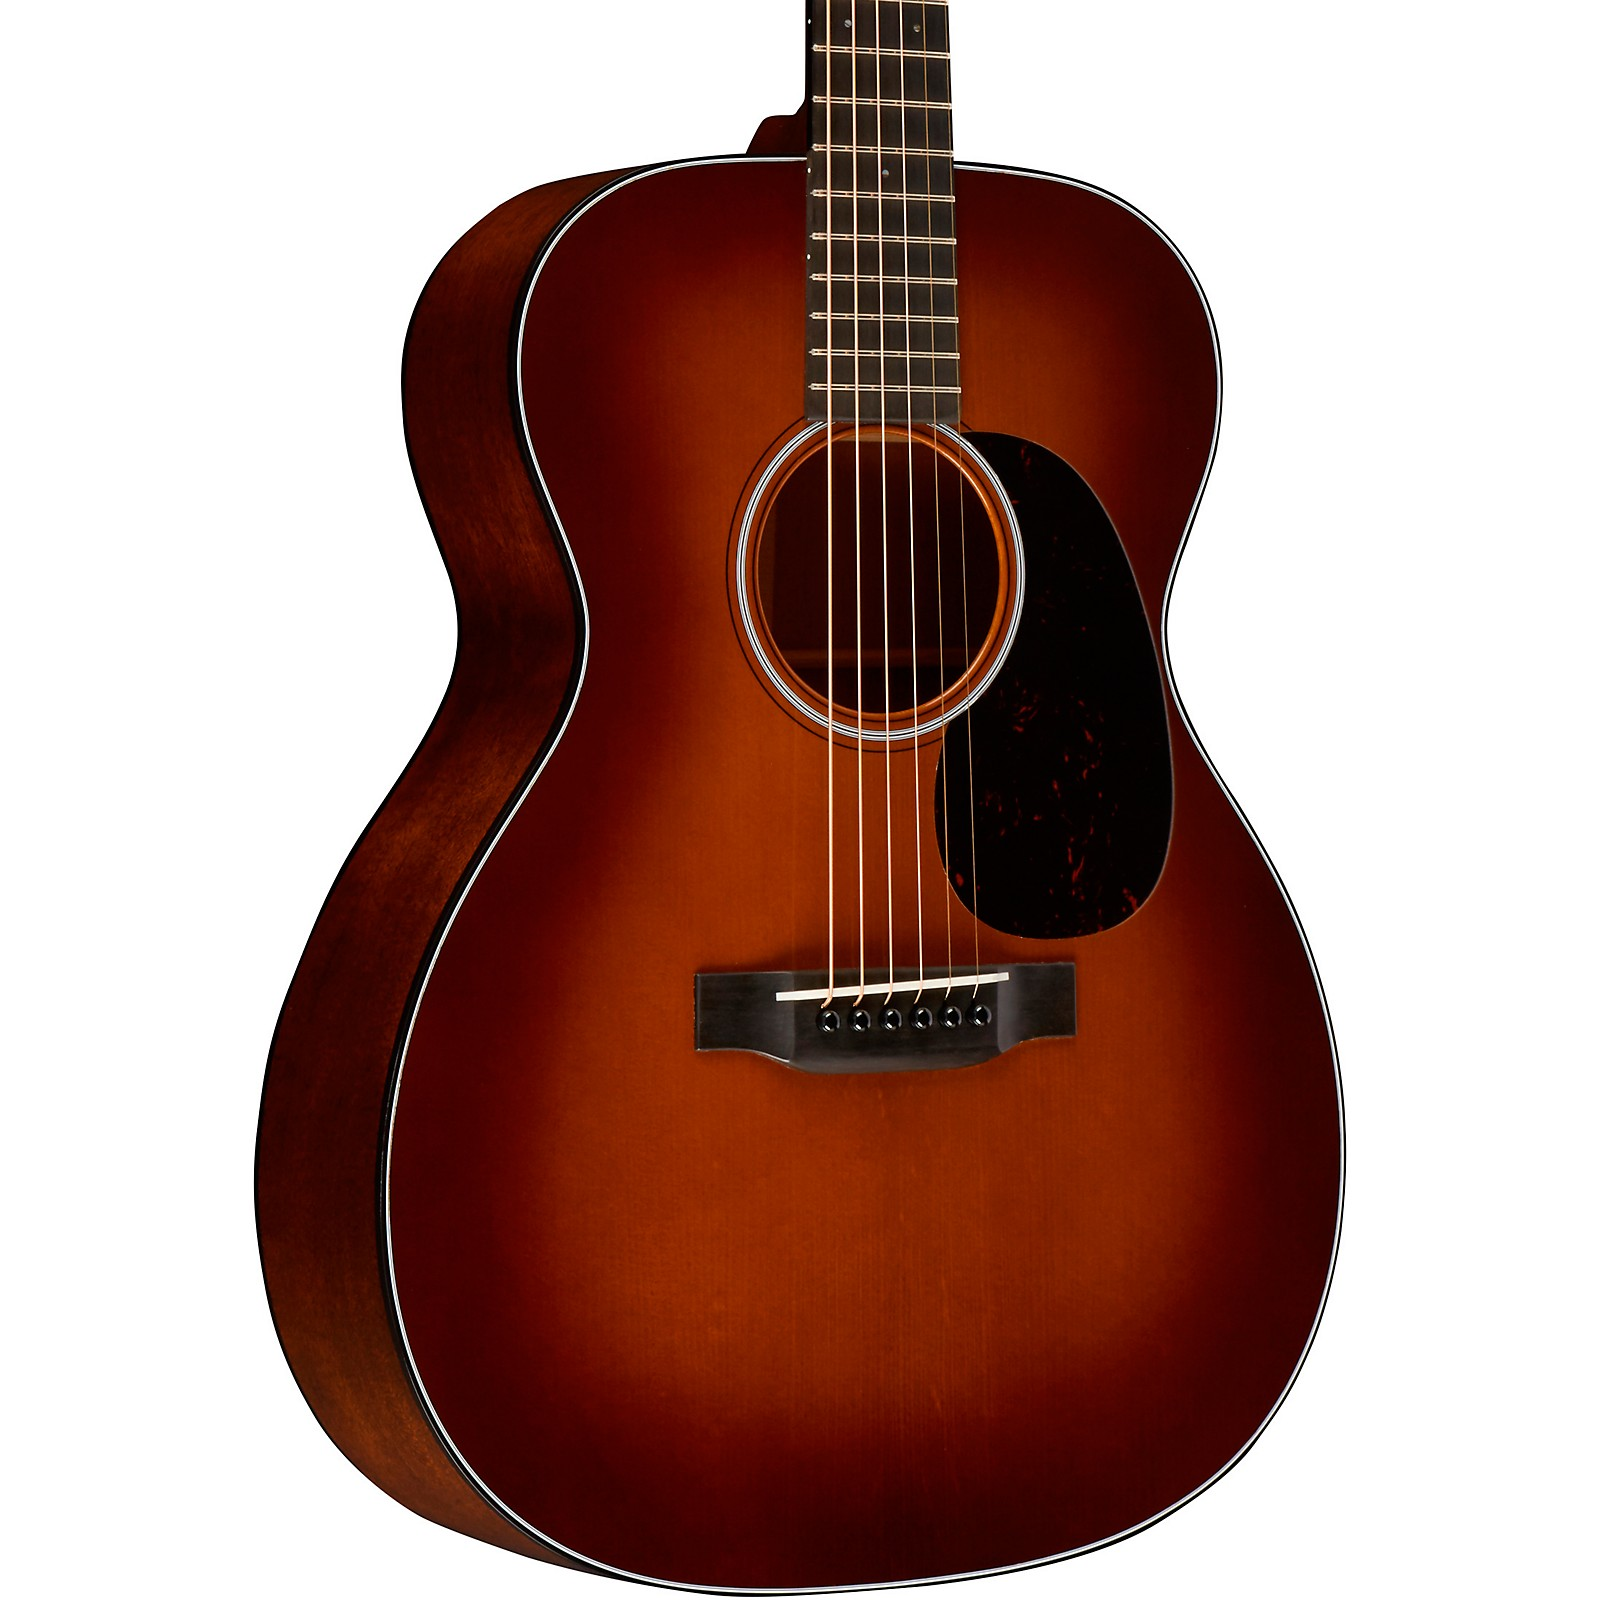 Martin Authentic Series 1933 OM-18 VTS Orchestra Model Acoustic Guitar